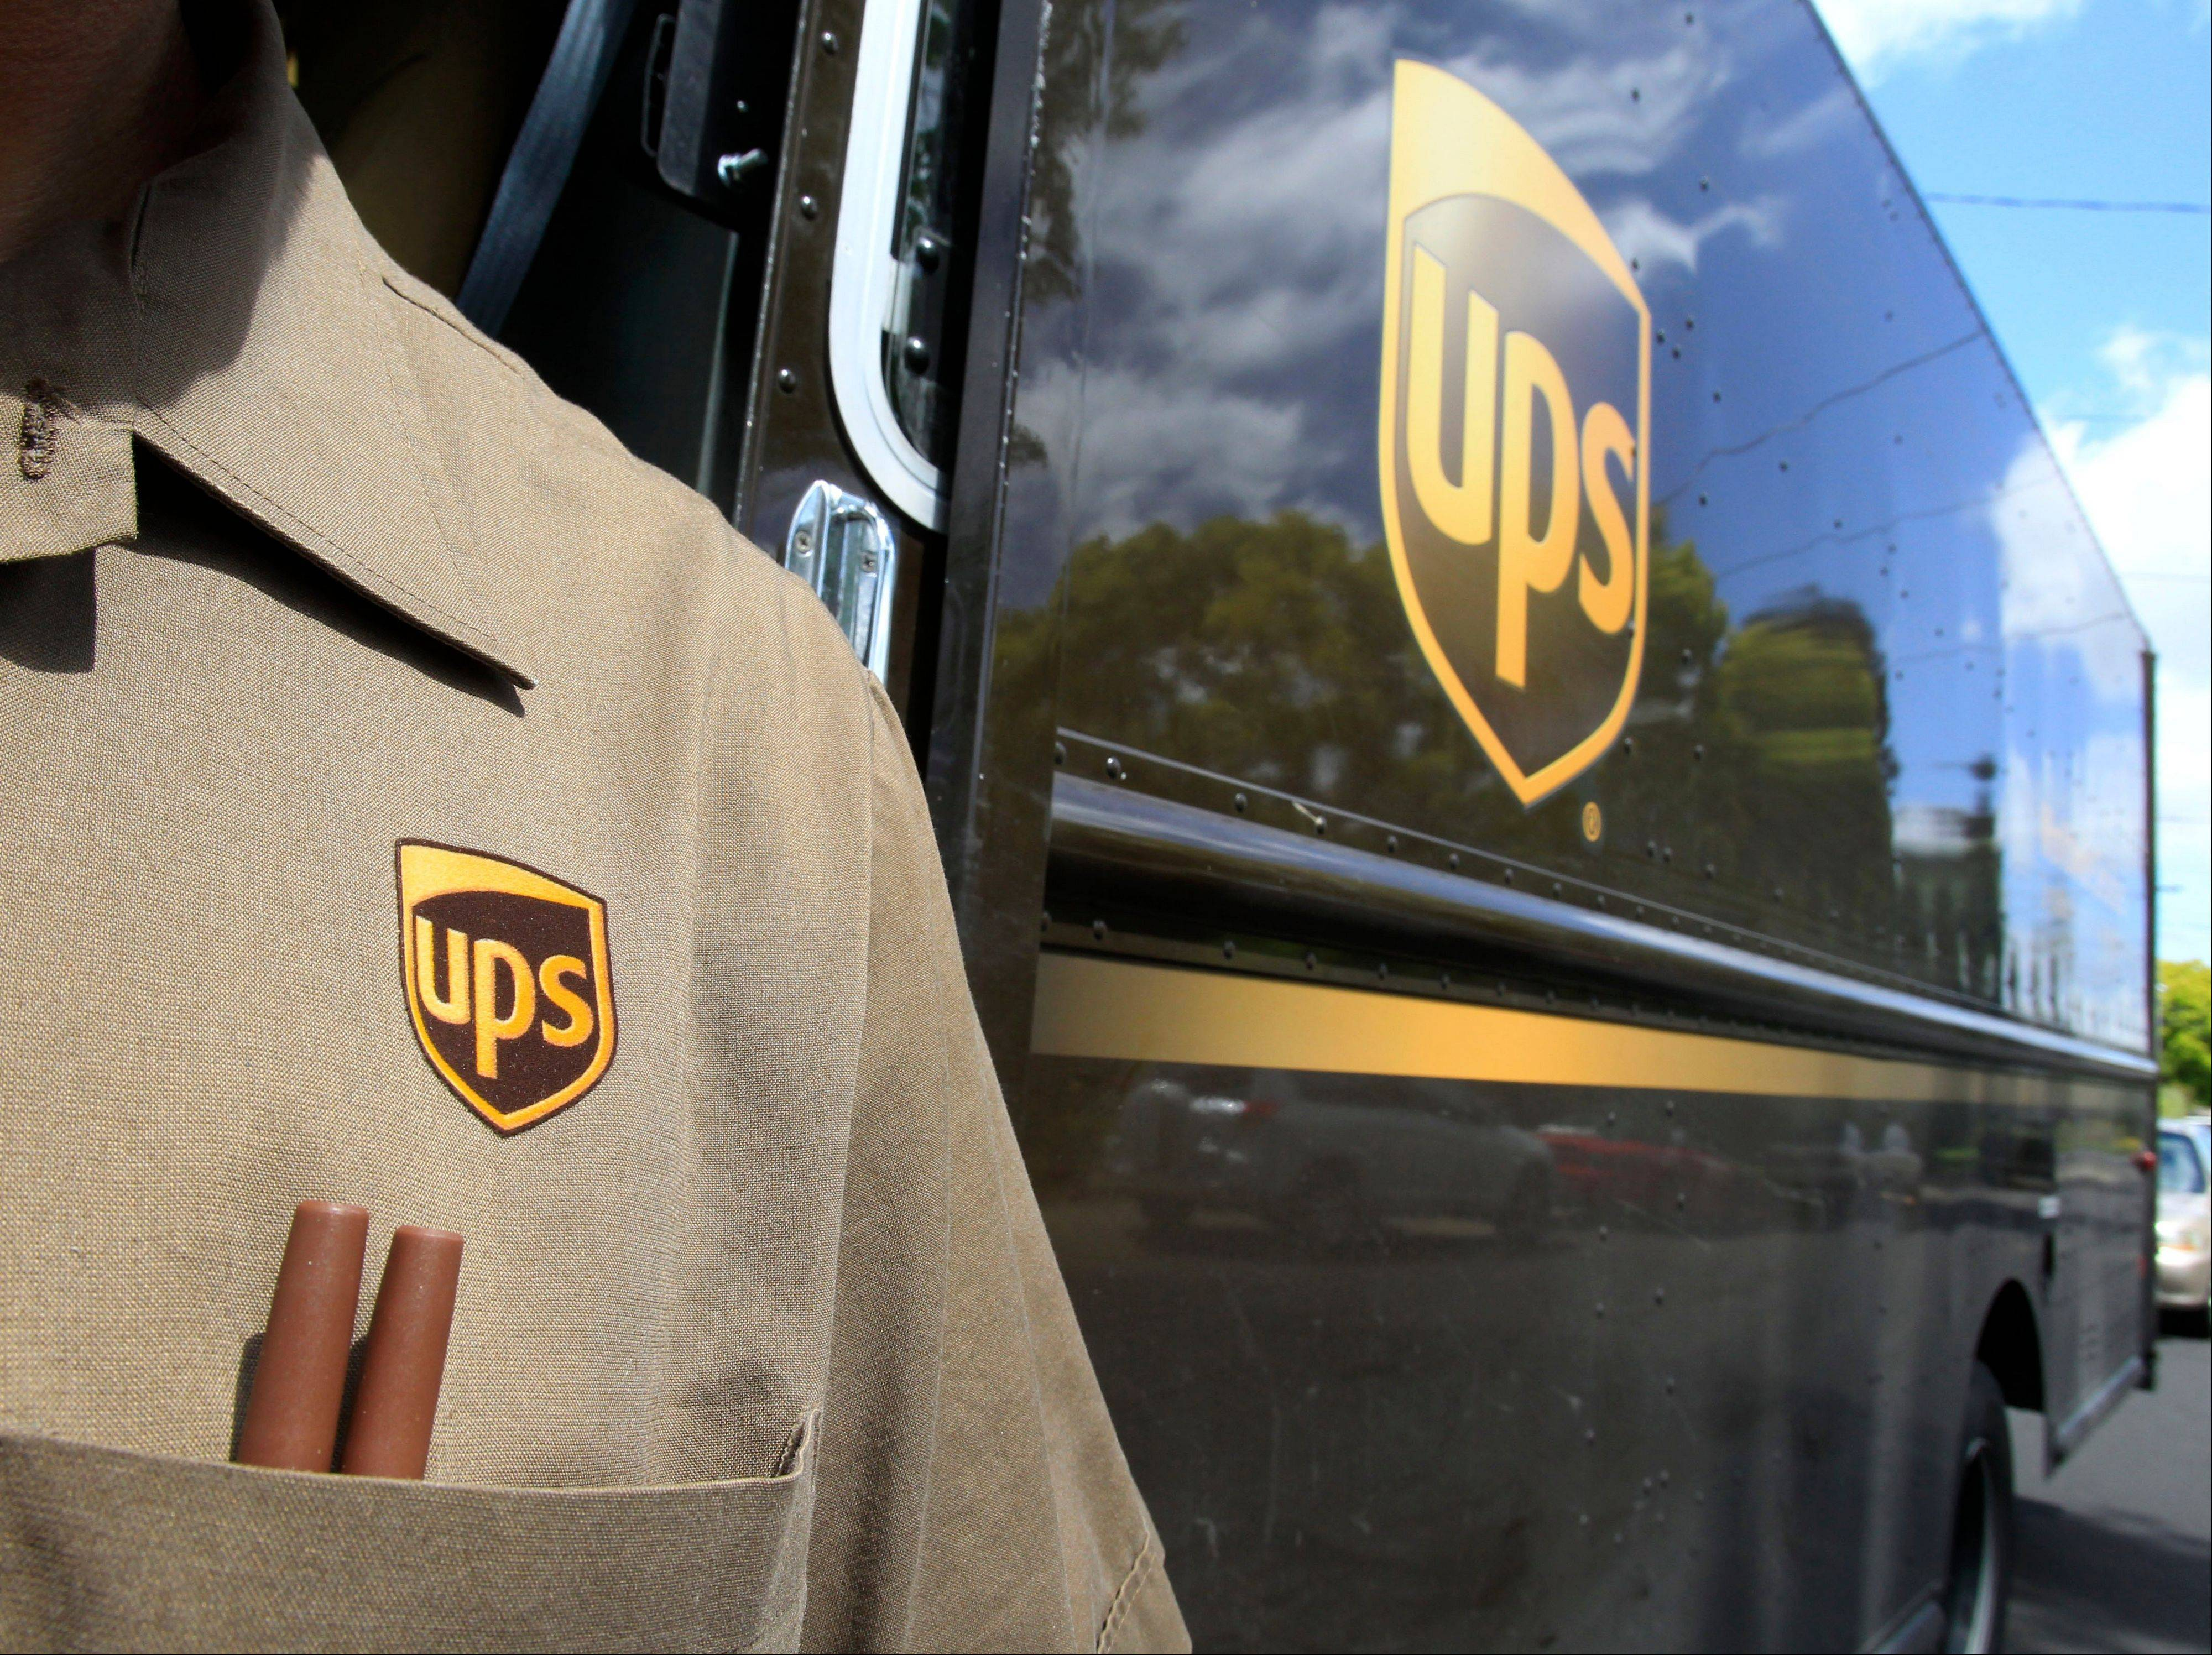 United Parcel Service lowered its earnings expectations for the year on Tuesday as economic weakness and uncertainty persist around the globe.